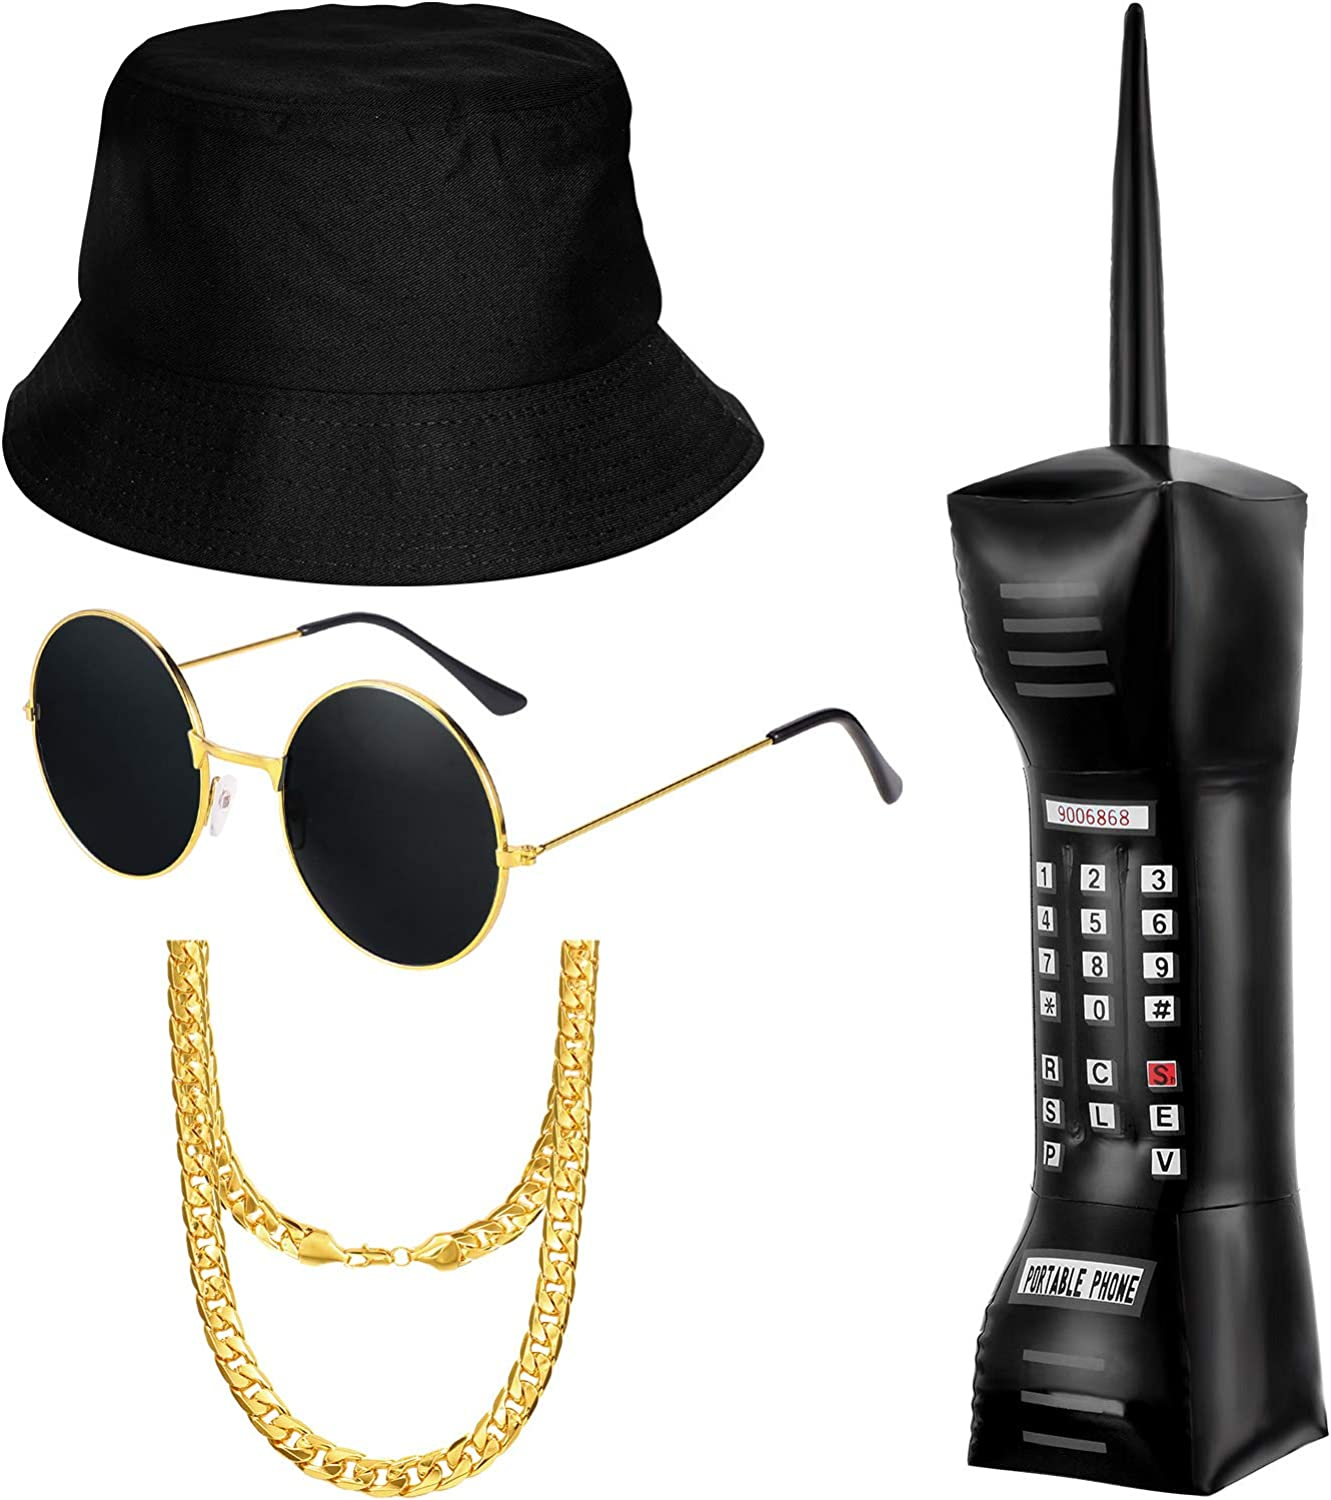 meekoo 80s/90s Boys Hip Hop Costume Kit 90s Rapper Outfits Costume Accessories, Inflatable Mobile Phone Bucket Hat Sunglasses Faux Gold Chain